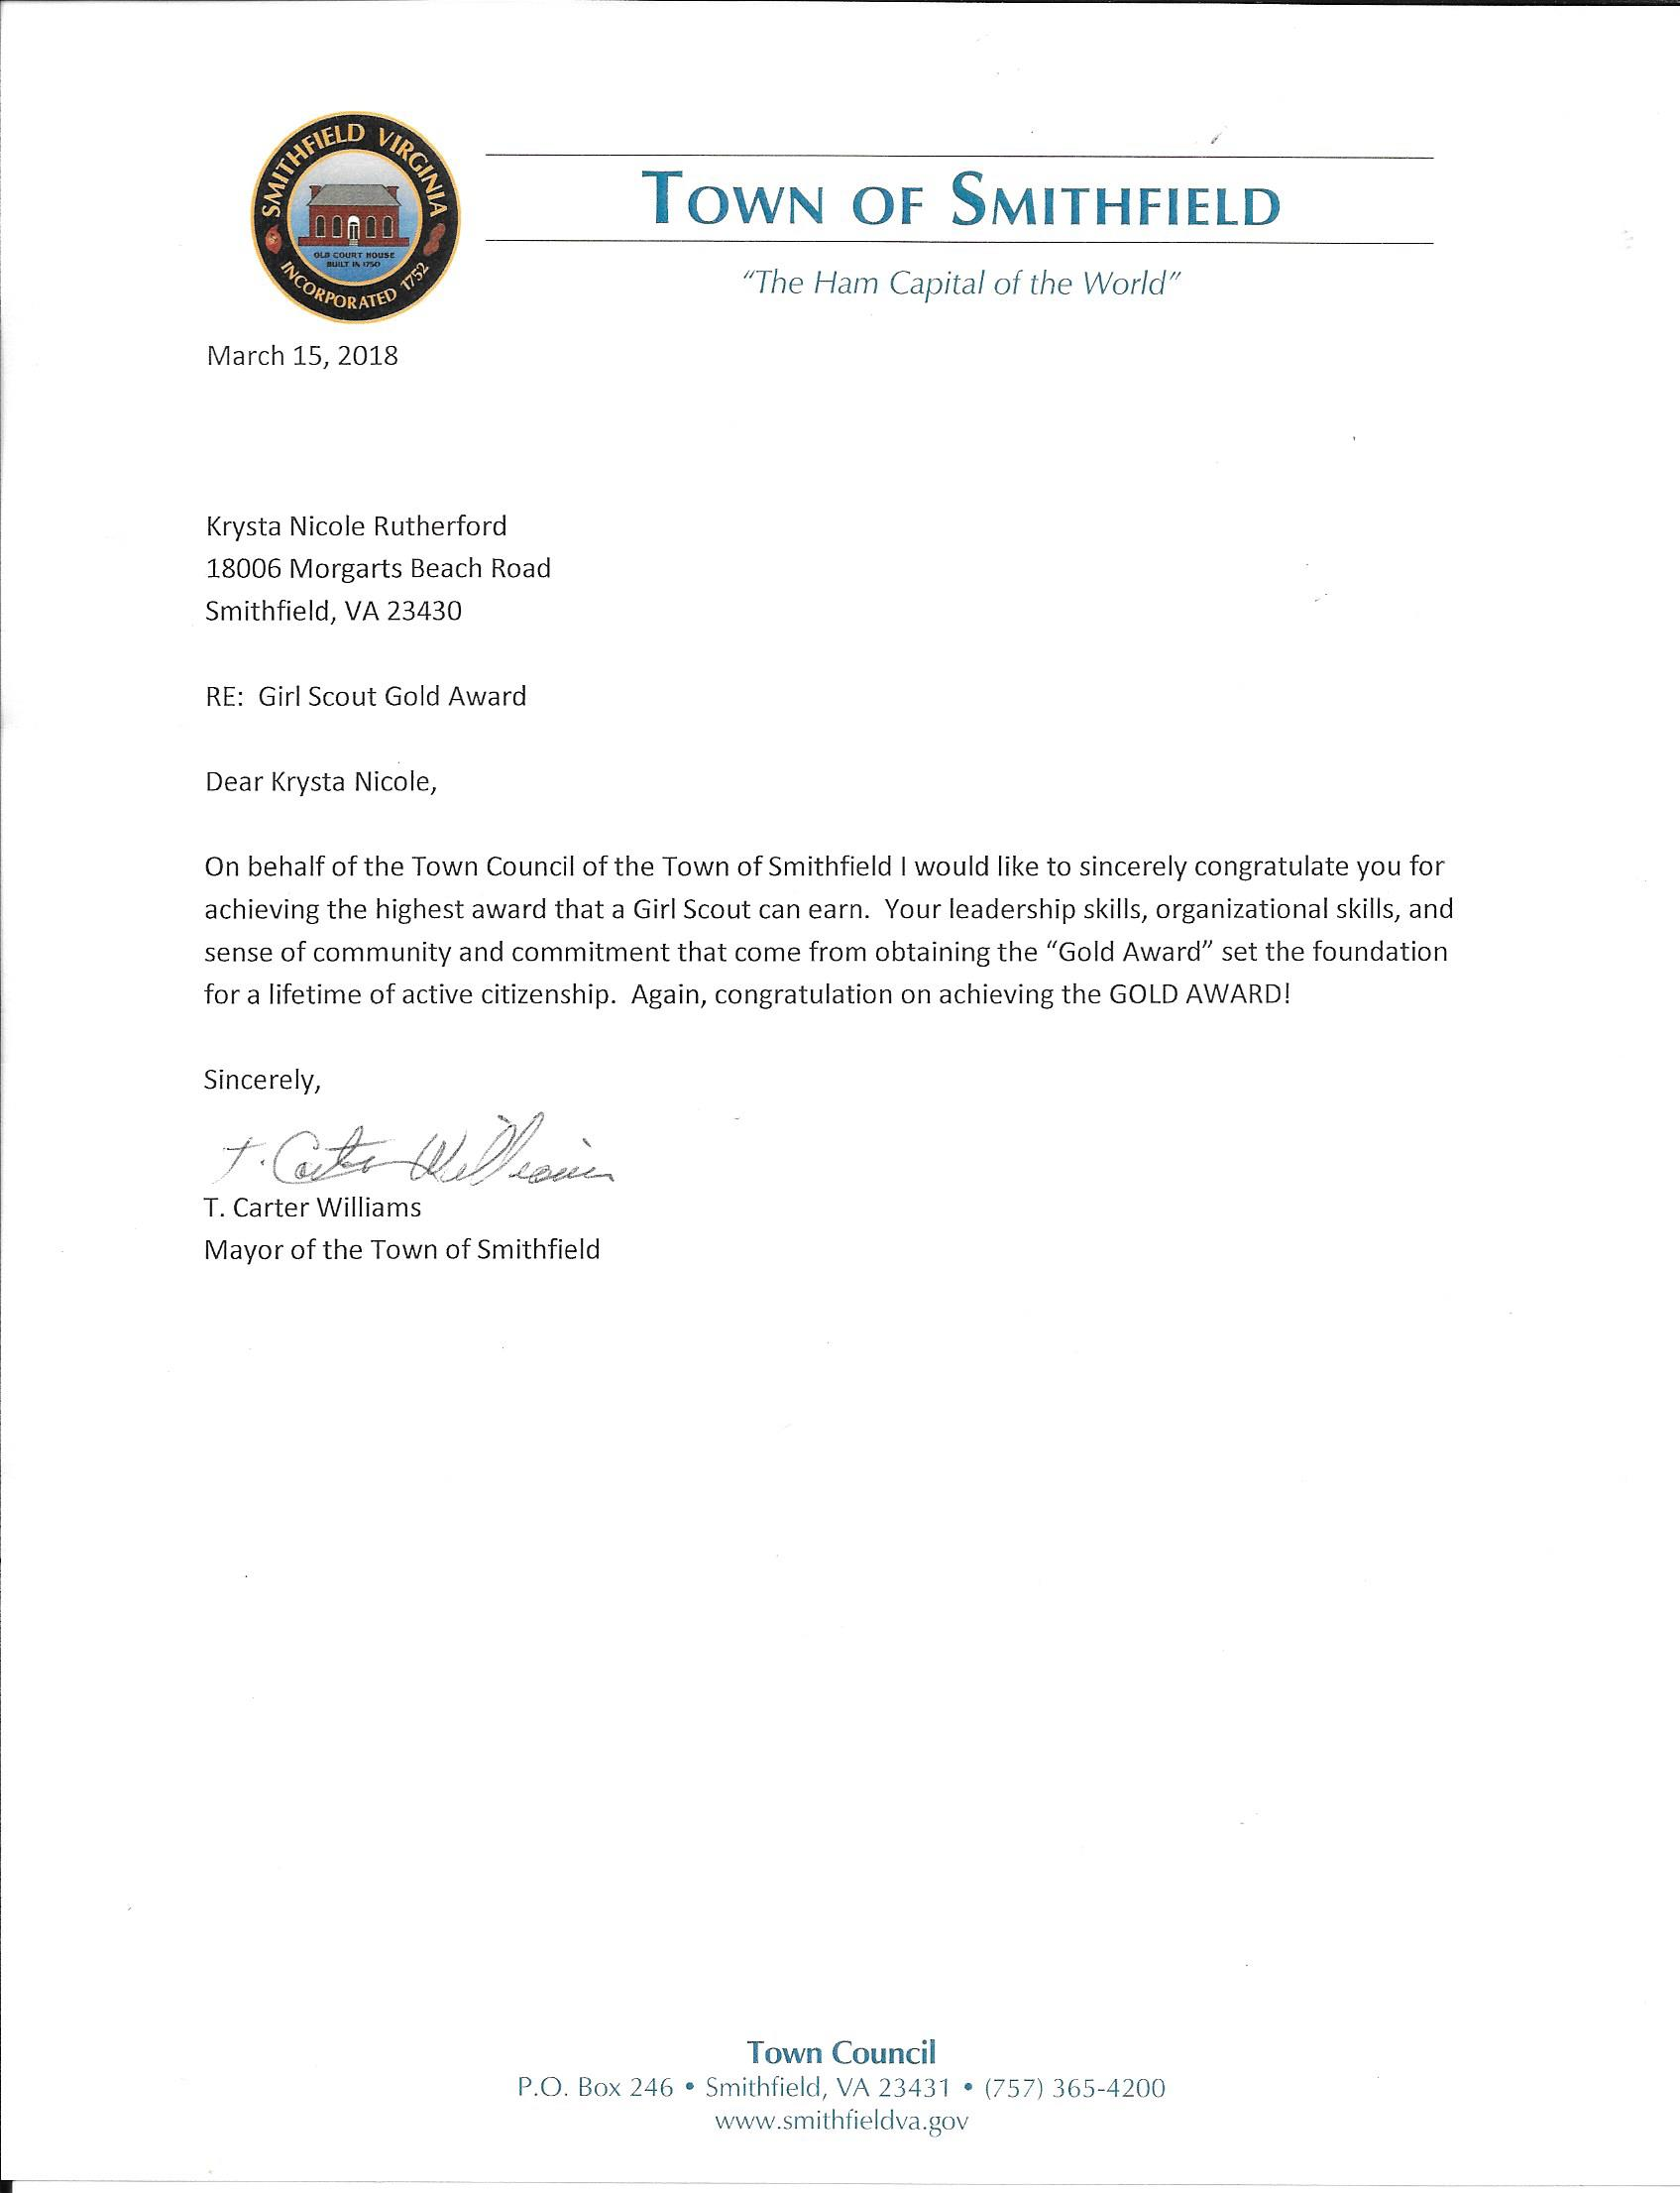 Letter from The Town of Smithfield.jpg